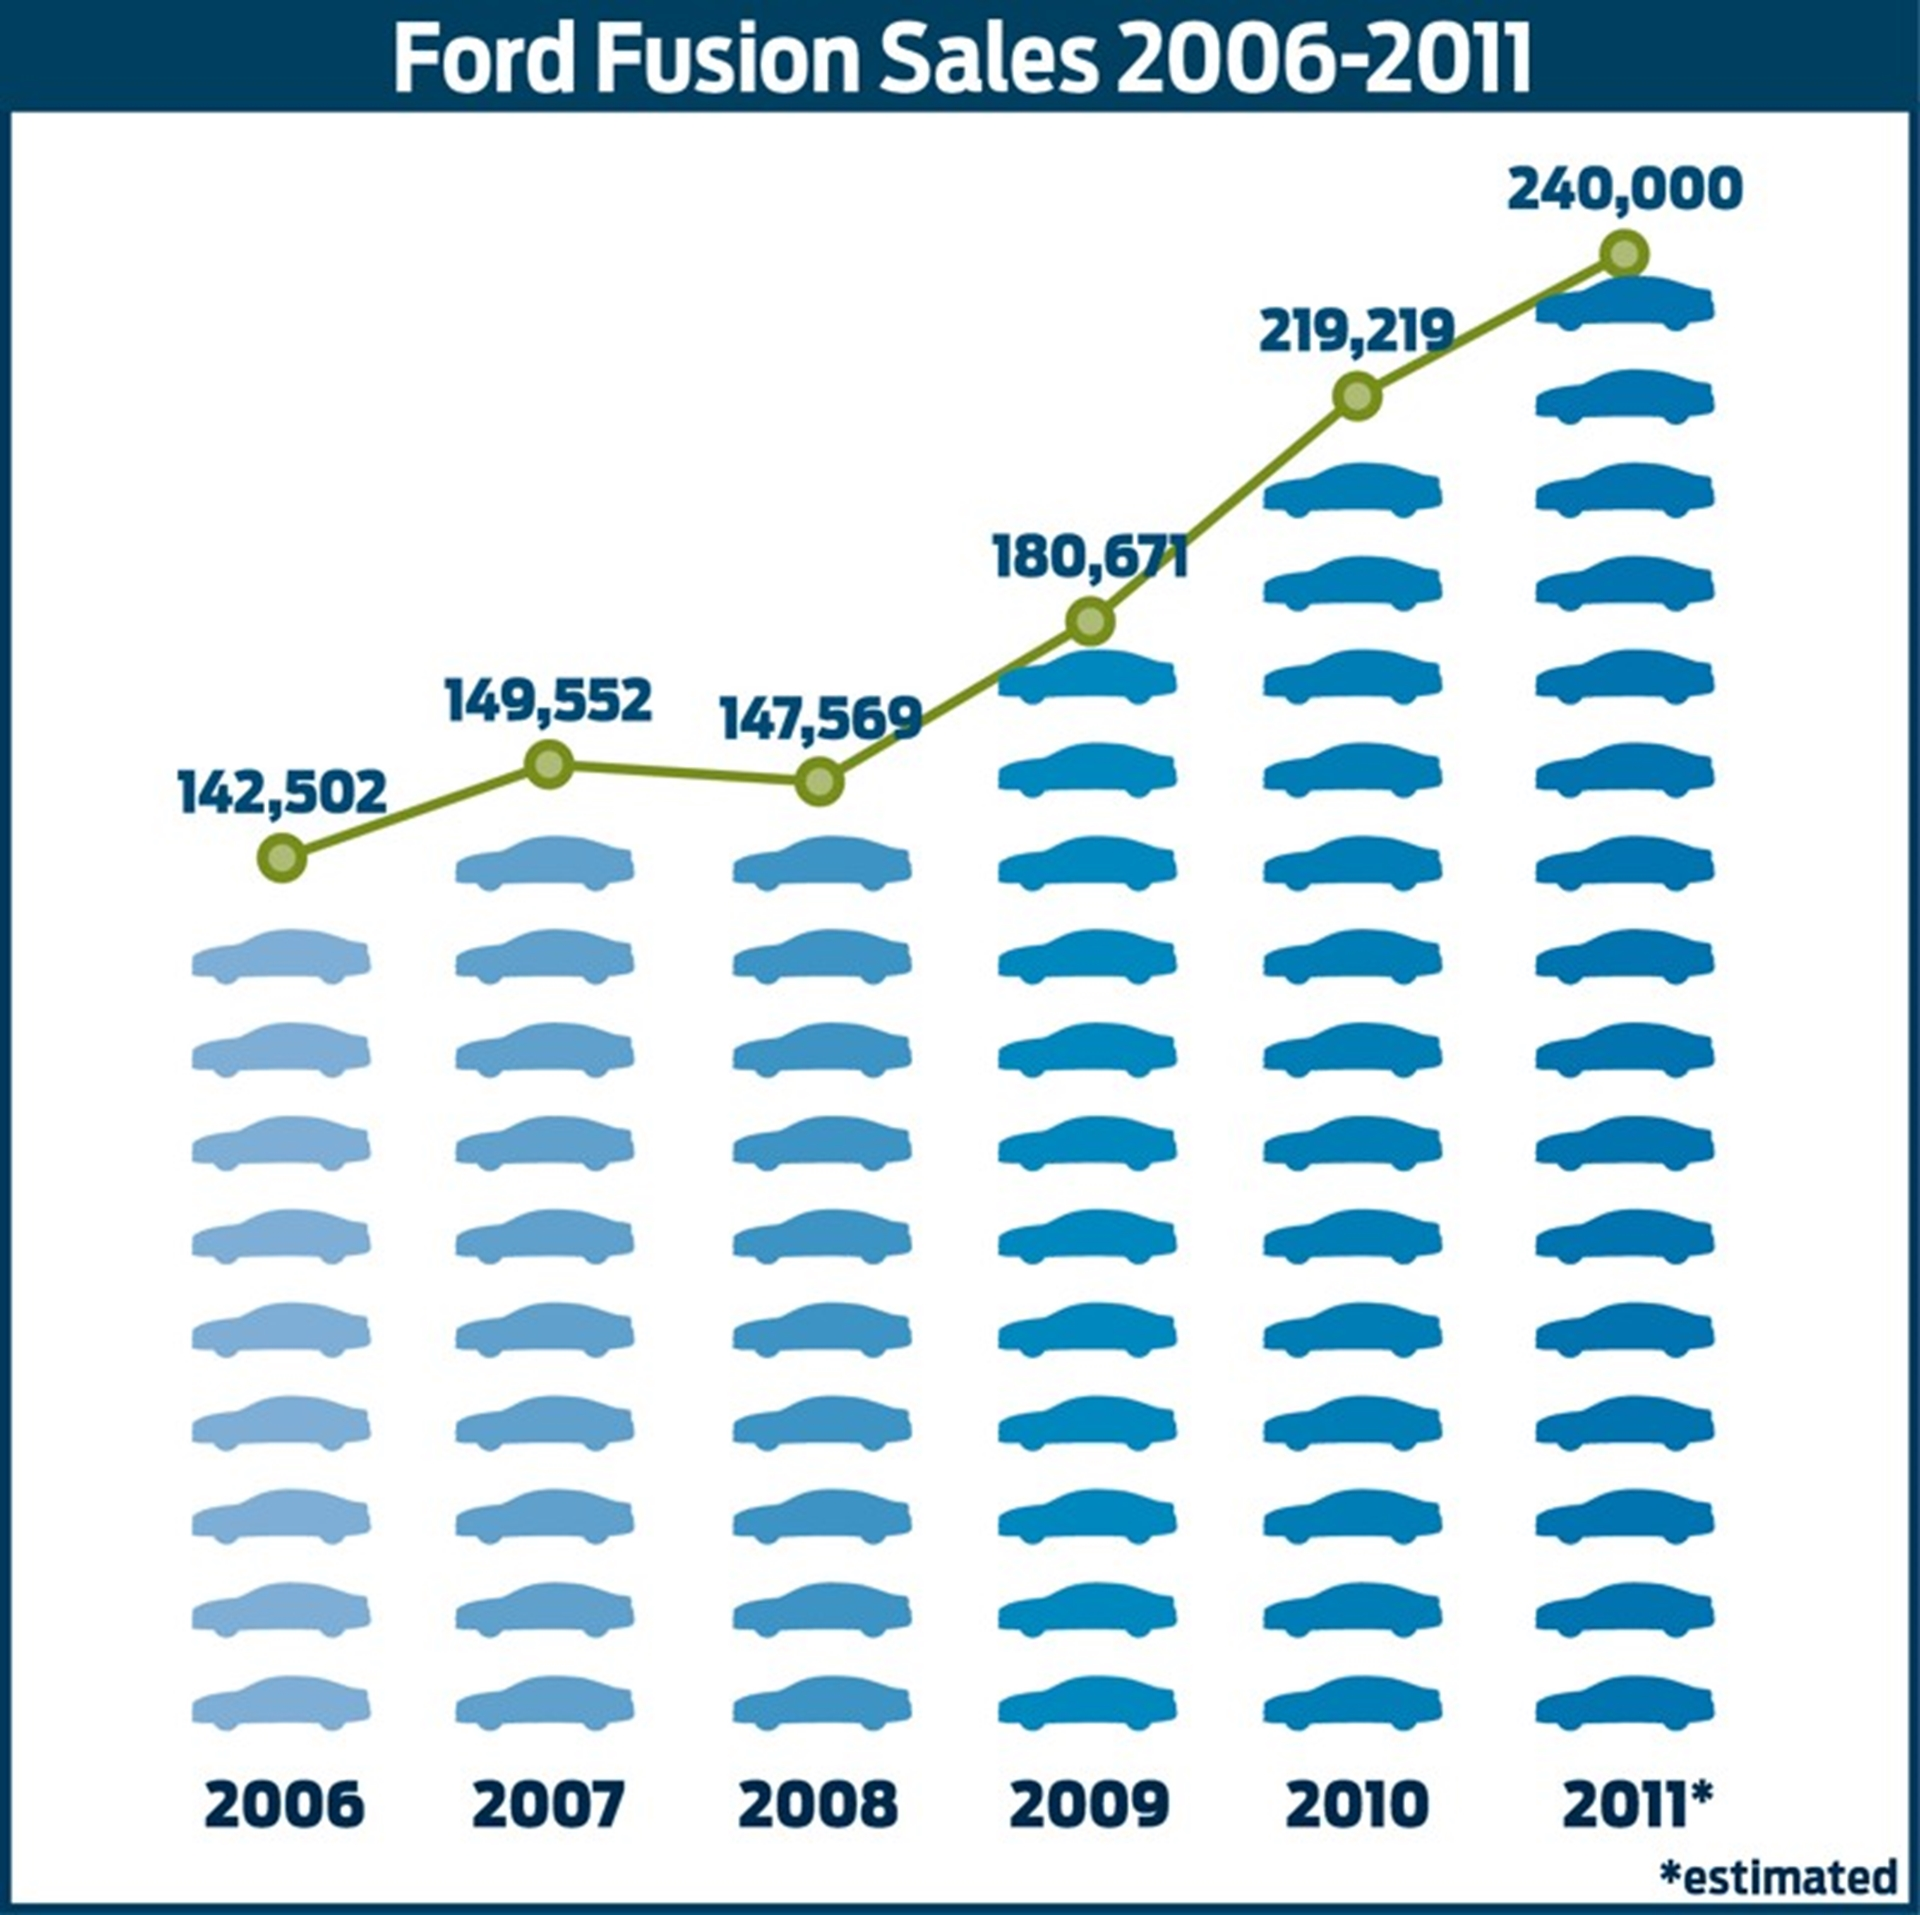 Ford Fusion Sales